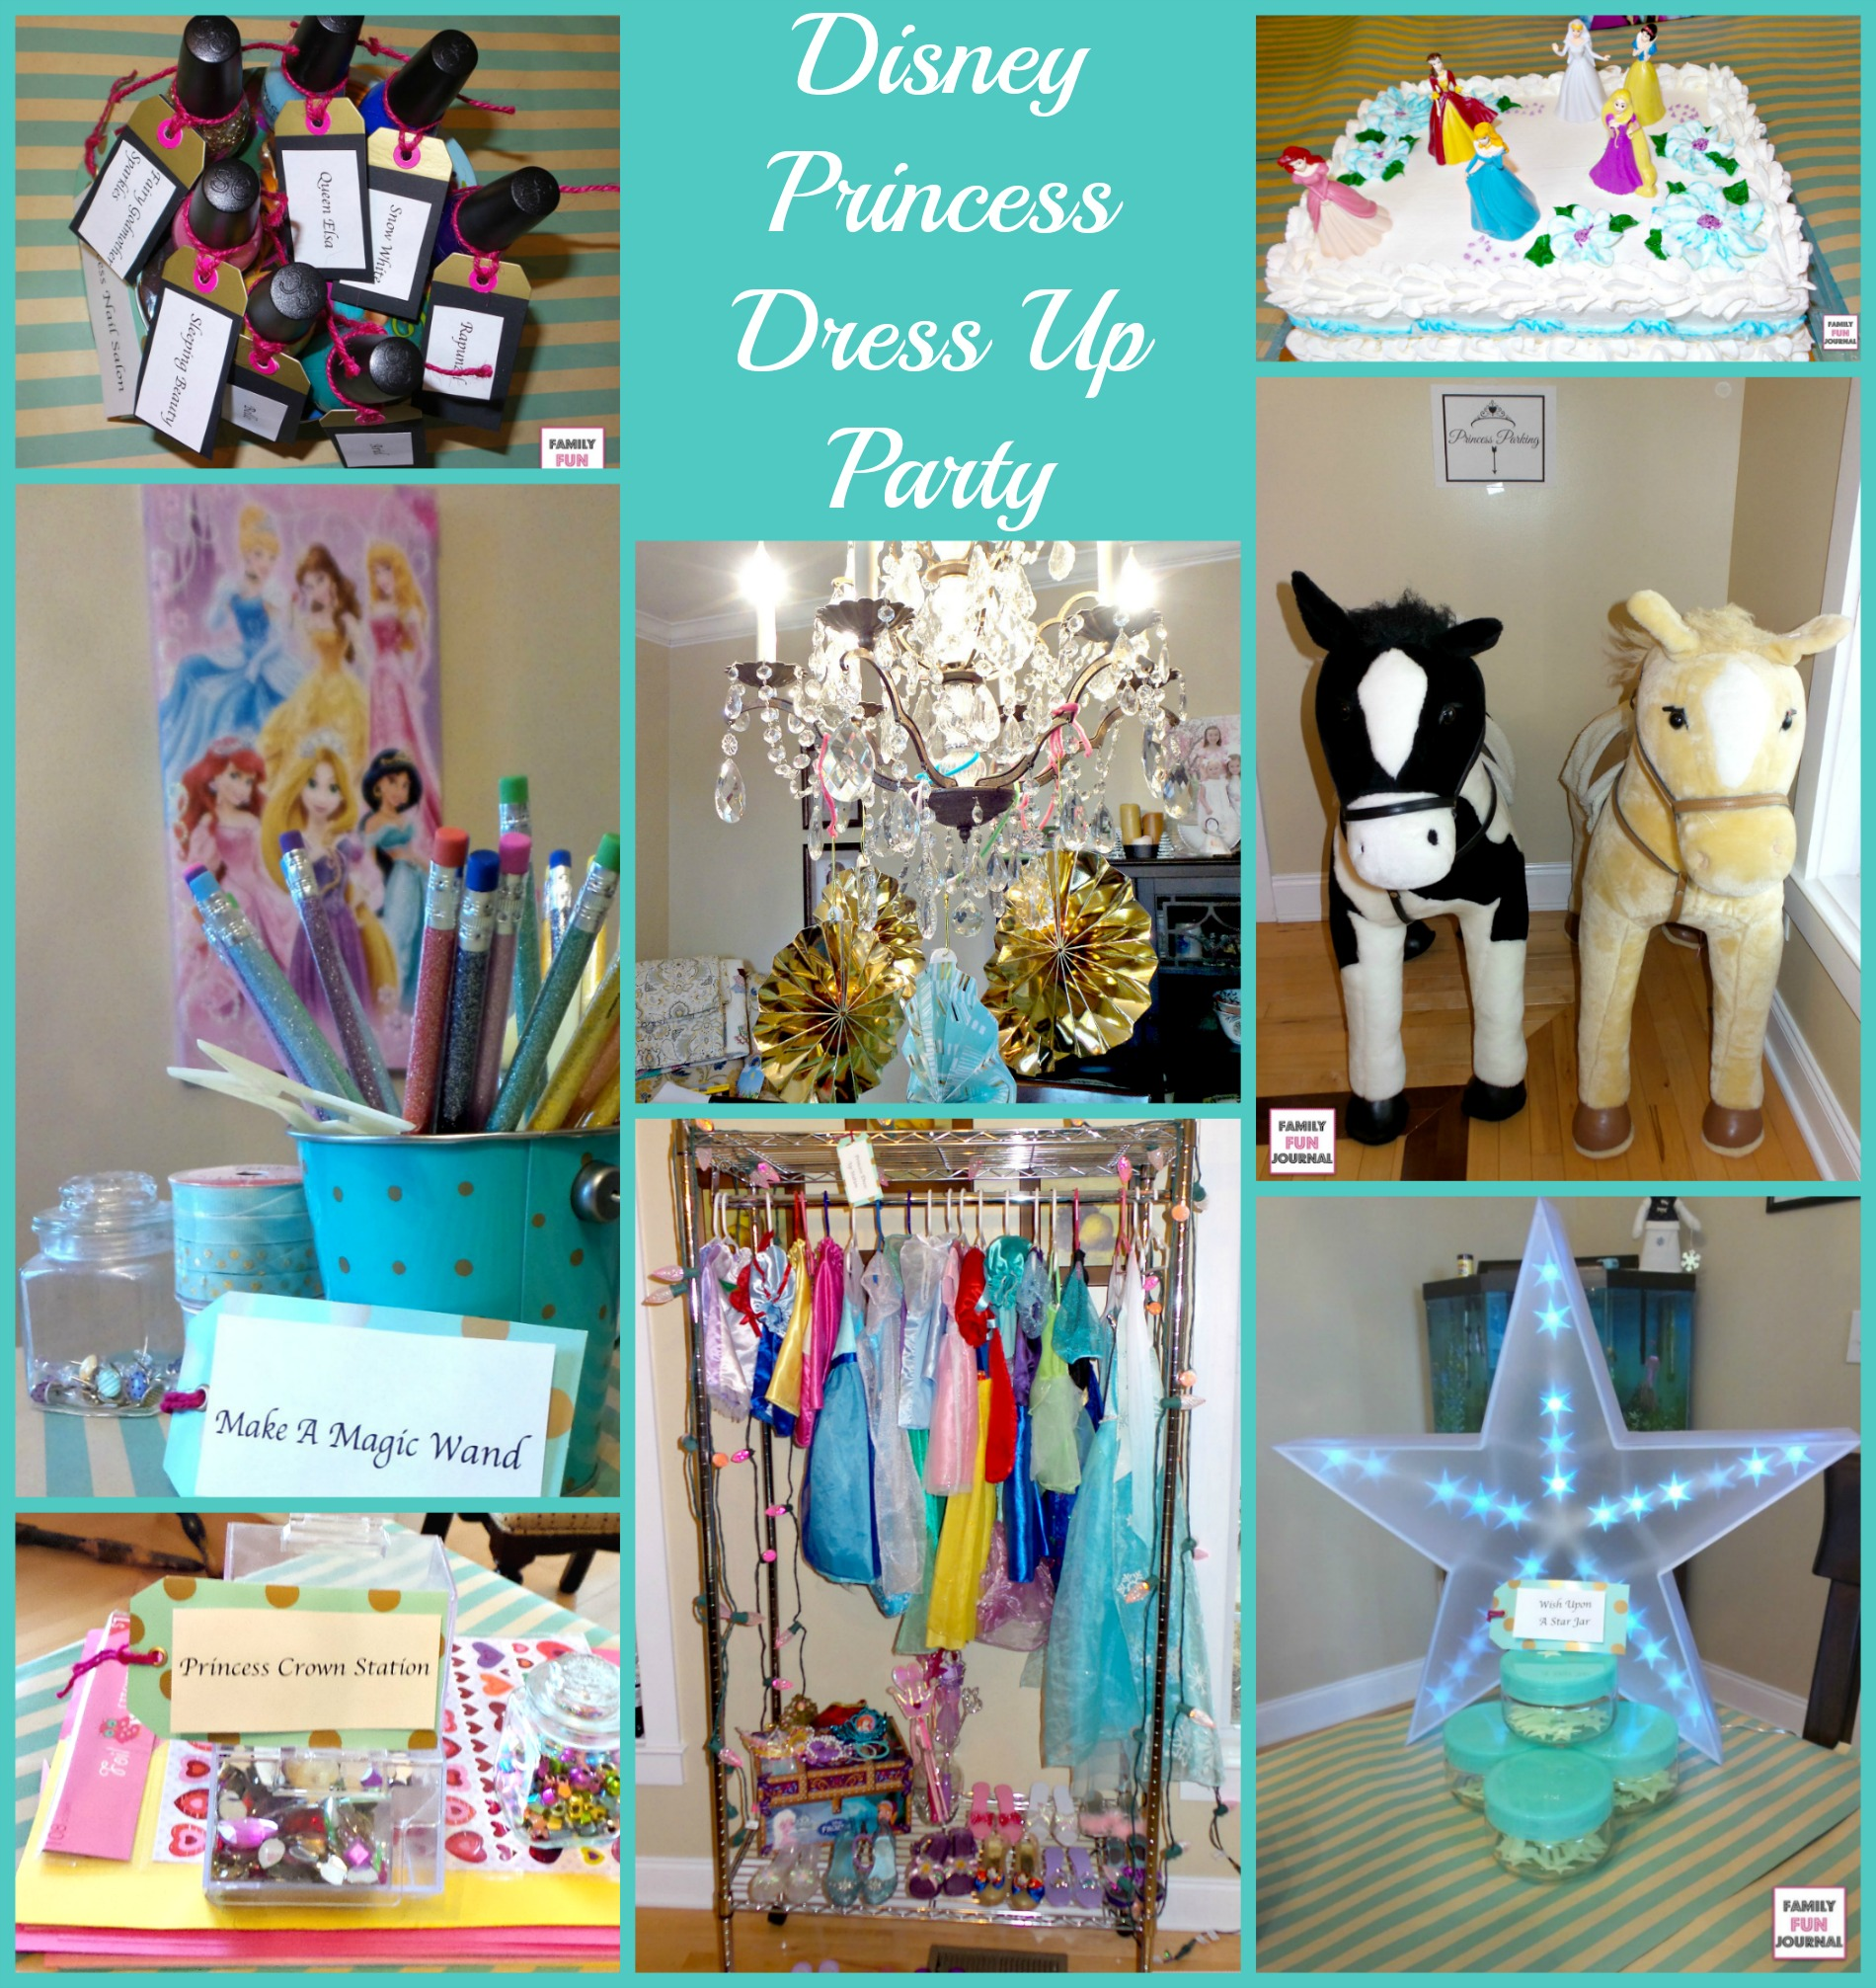 Disney Princess Dress Up Party #DisneySide - Family Fun Journal